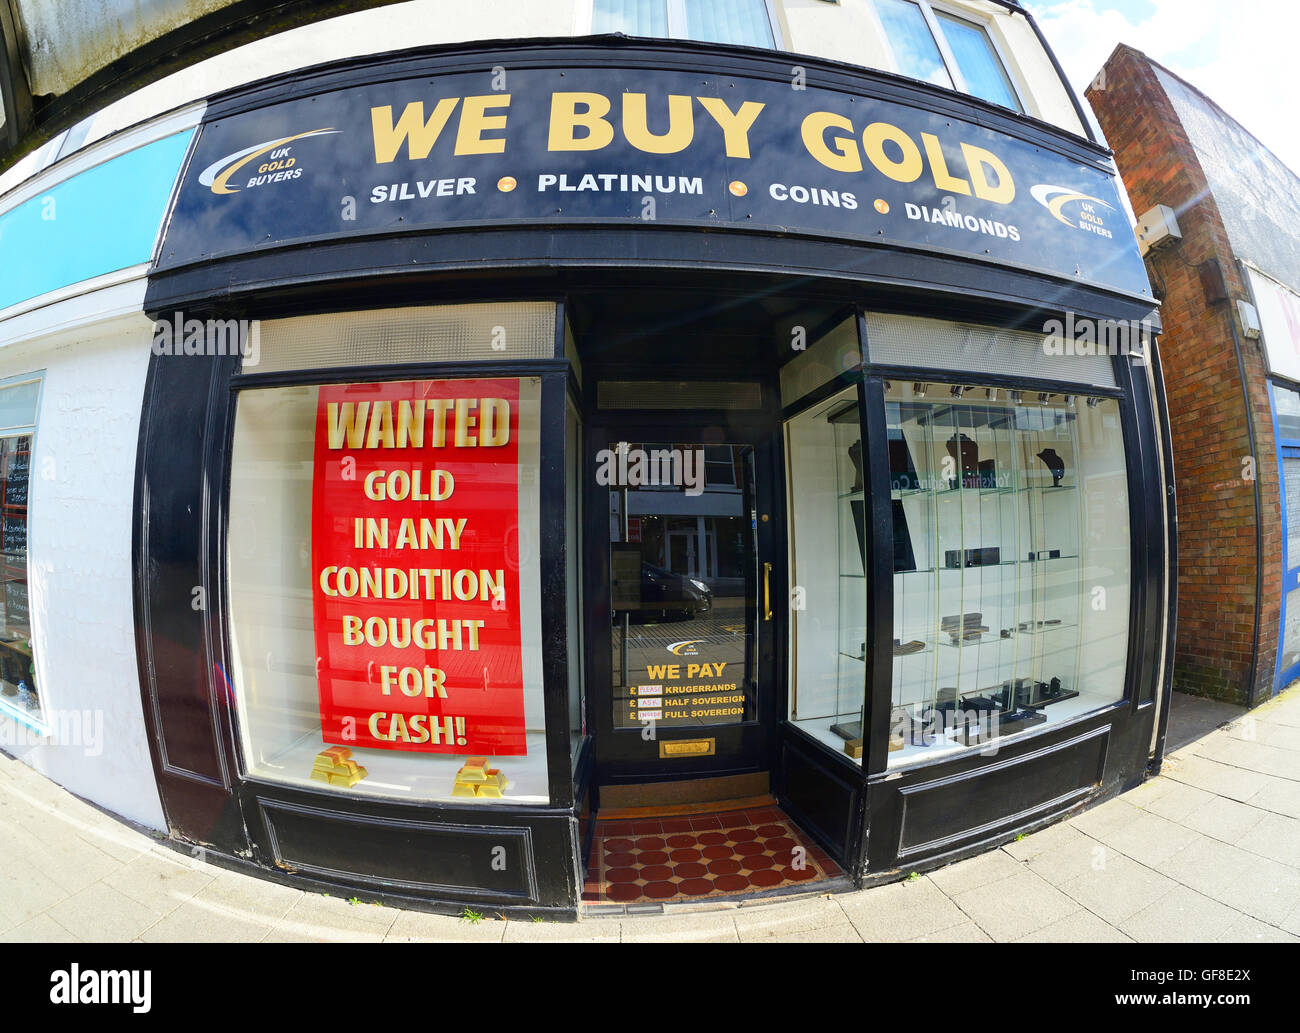 gold wanted sign in shop buying gold, silver, platinum, diamonds yorkshire united kingdom - Stock Image